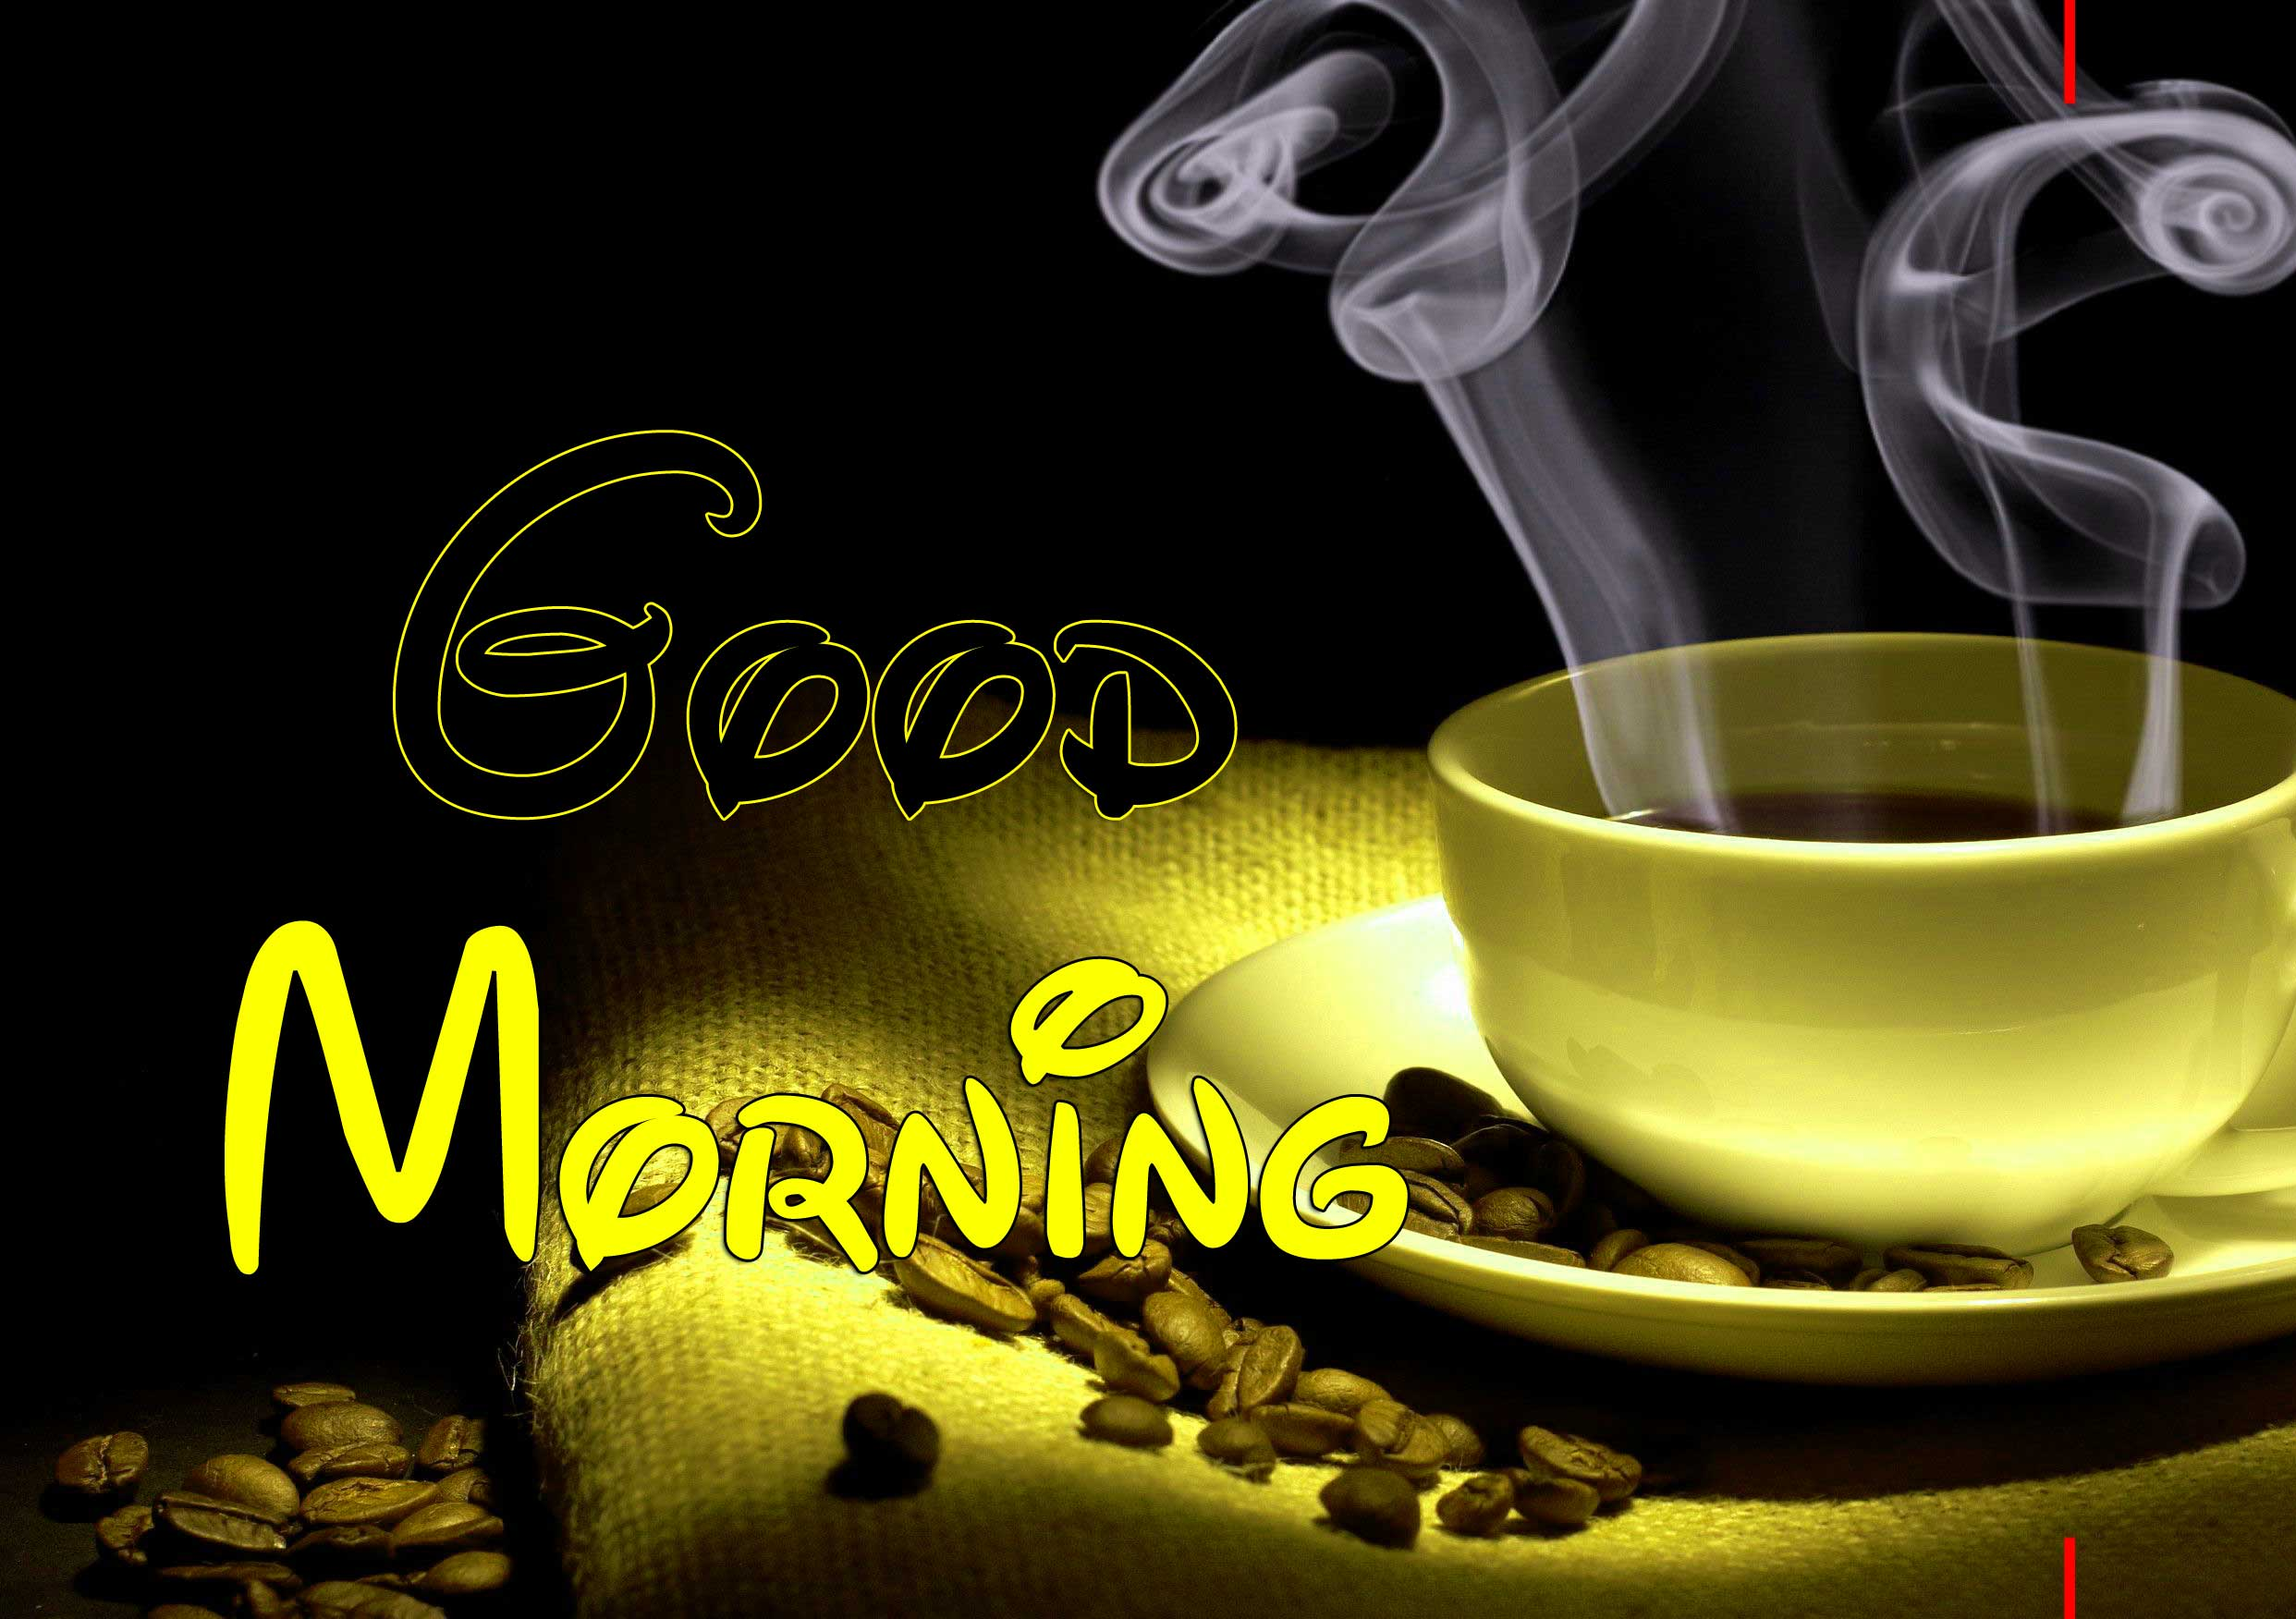 New Good Morning Images Wallpaper 4